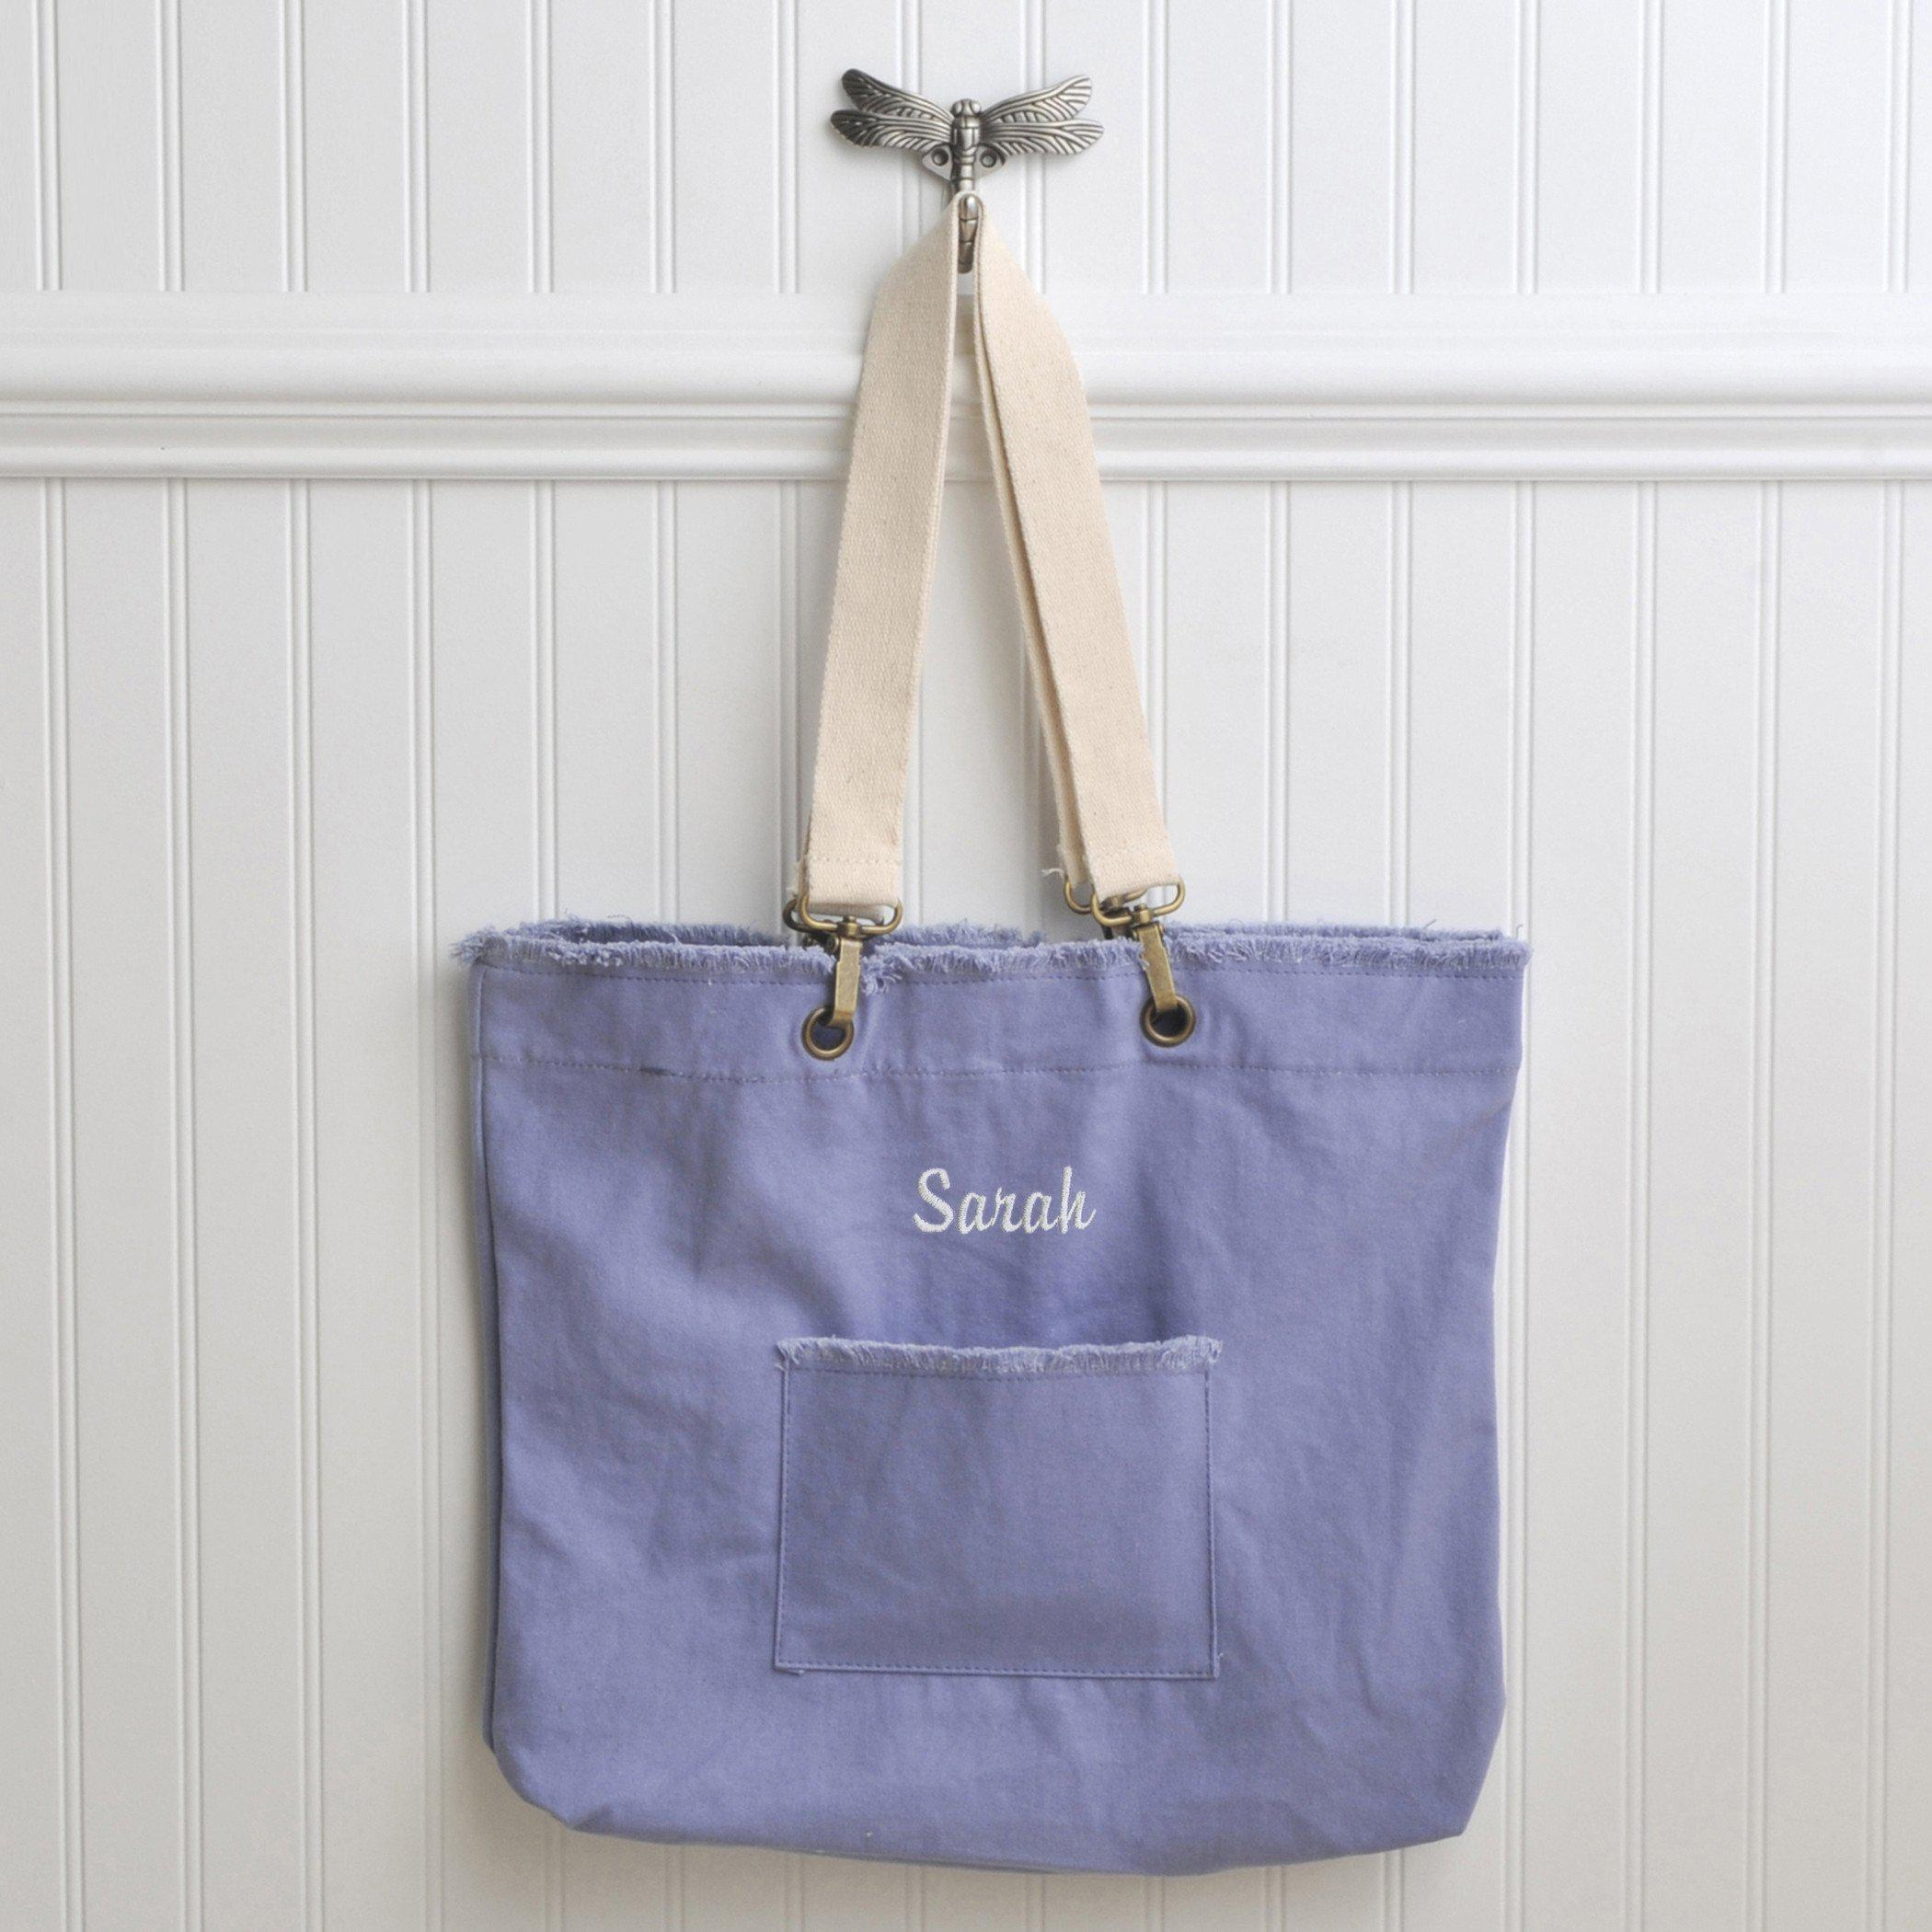 Personalized-Tote-Bags-Canvas-4-Colors-Gifts-for-Her